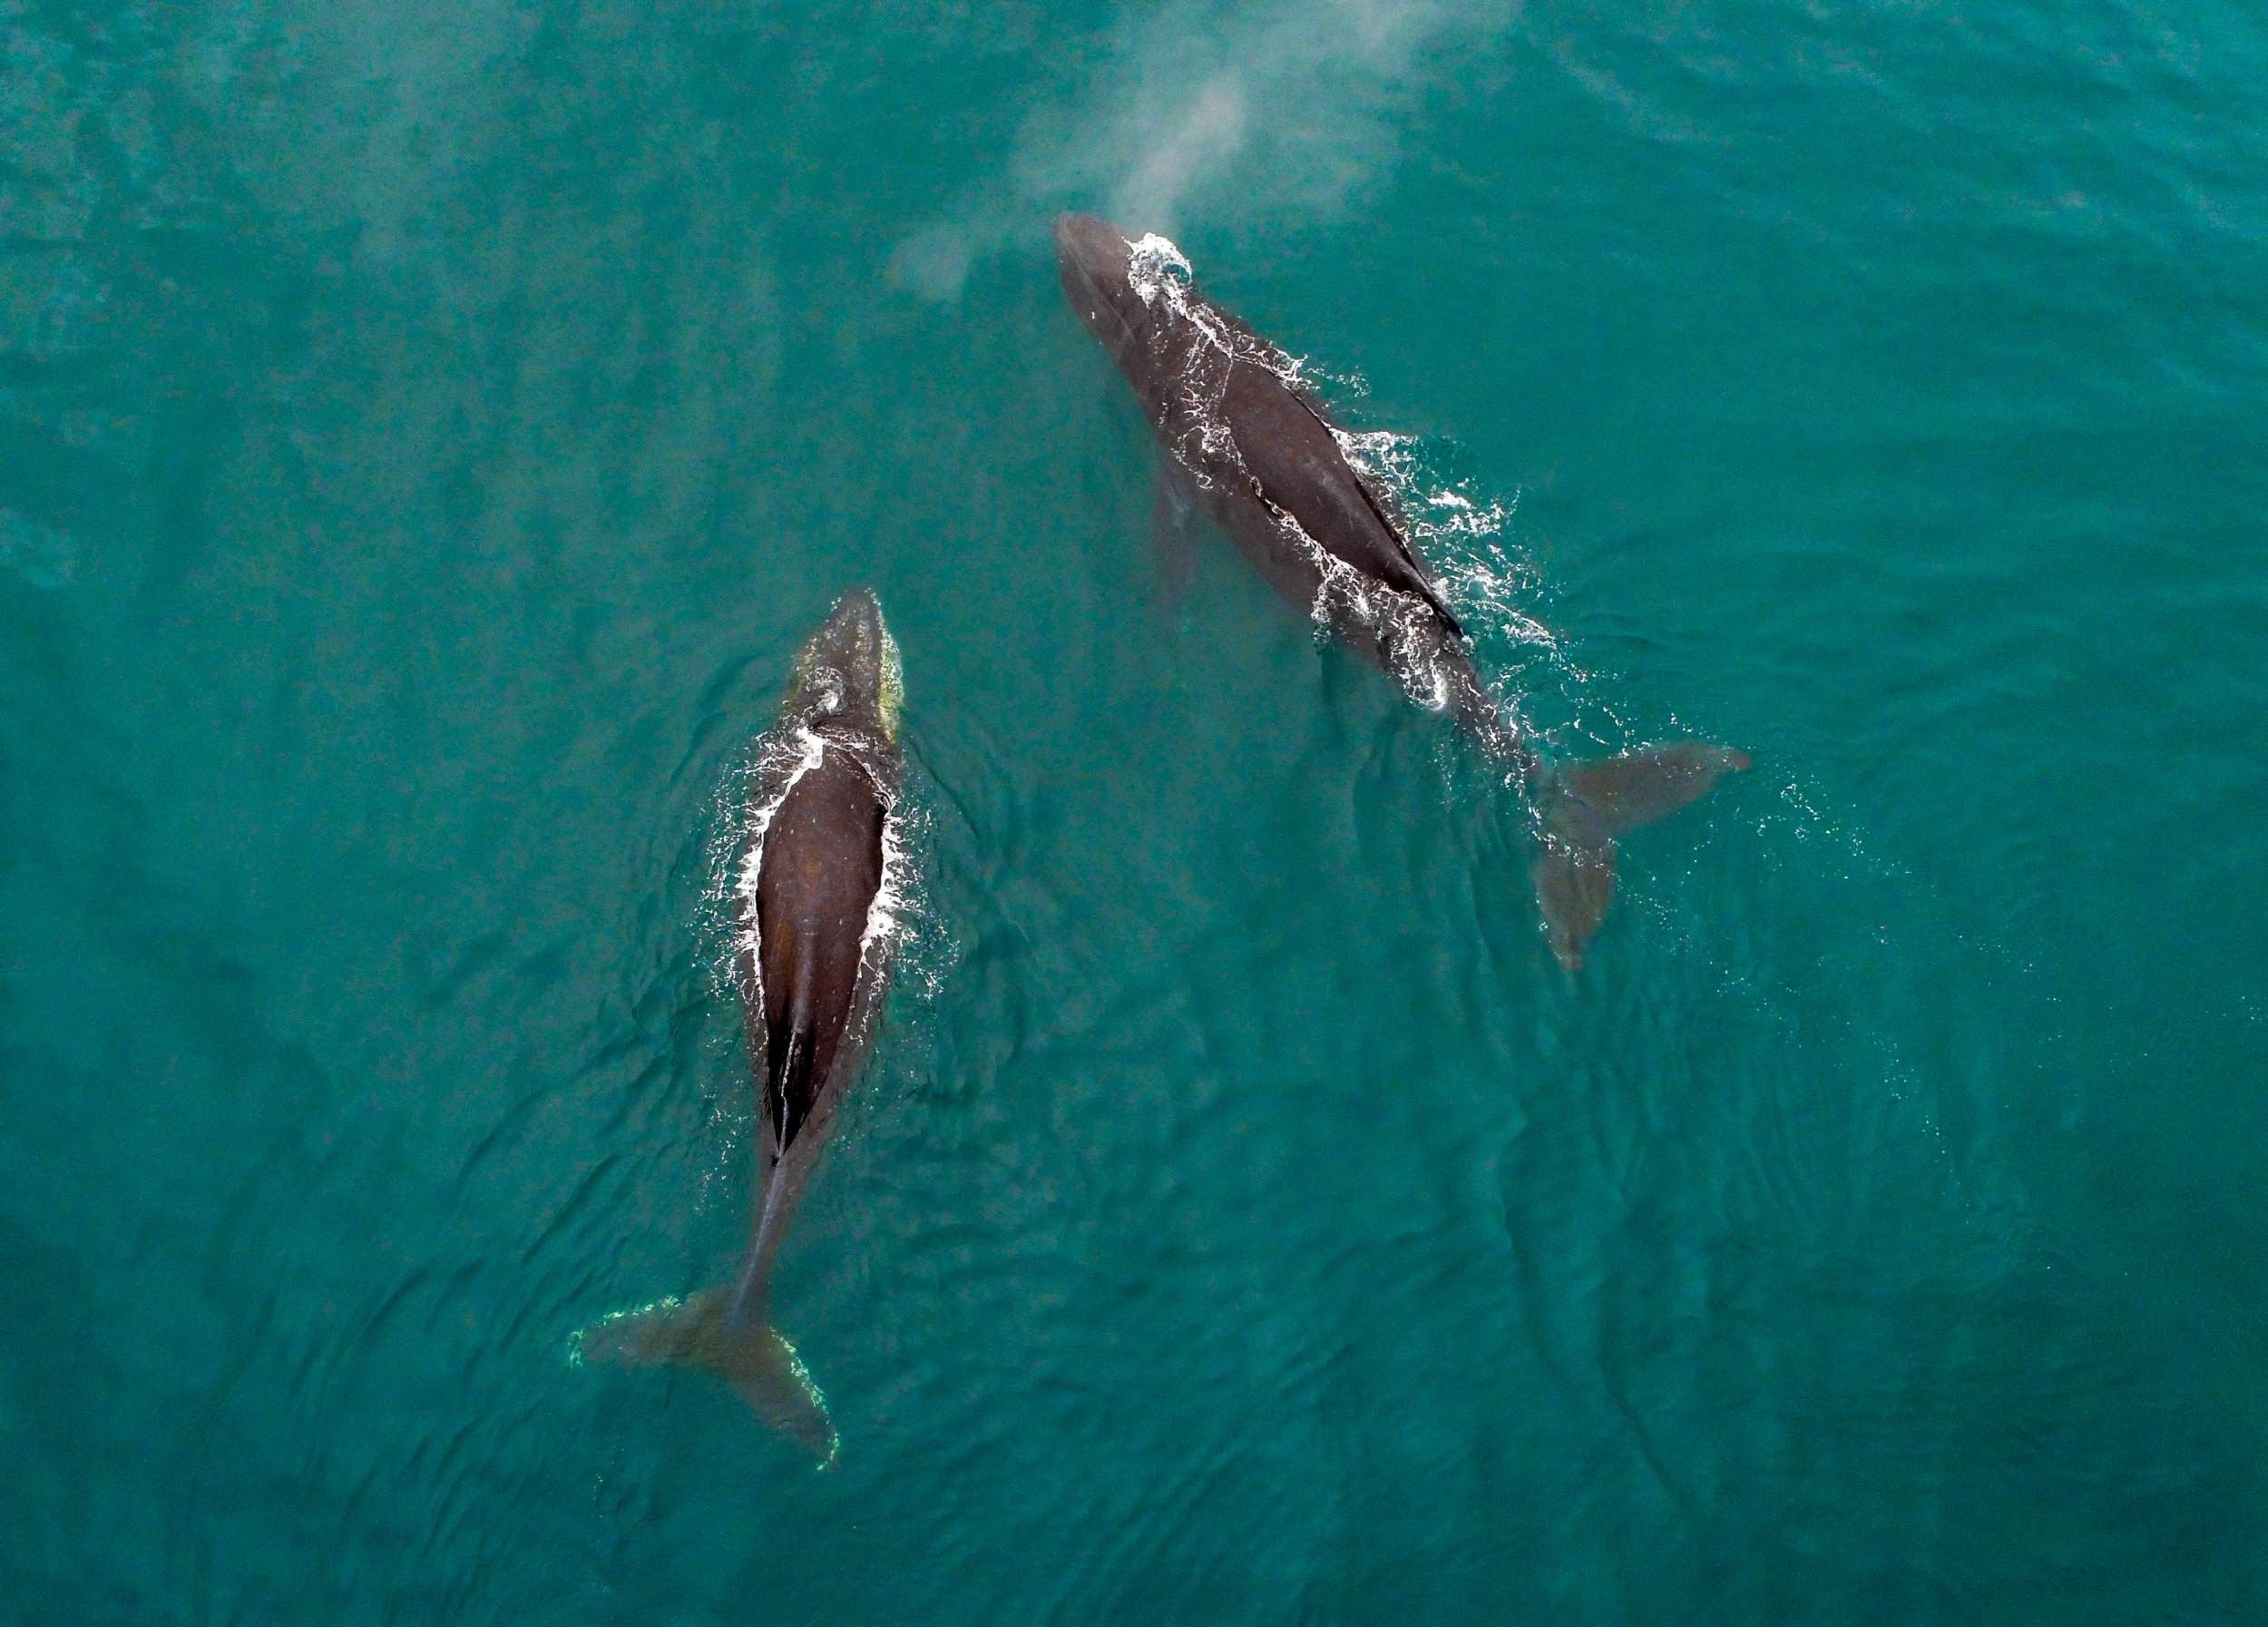 By resuming commercial whaling Japan is putting our planet at risk